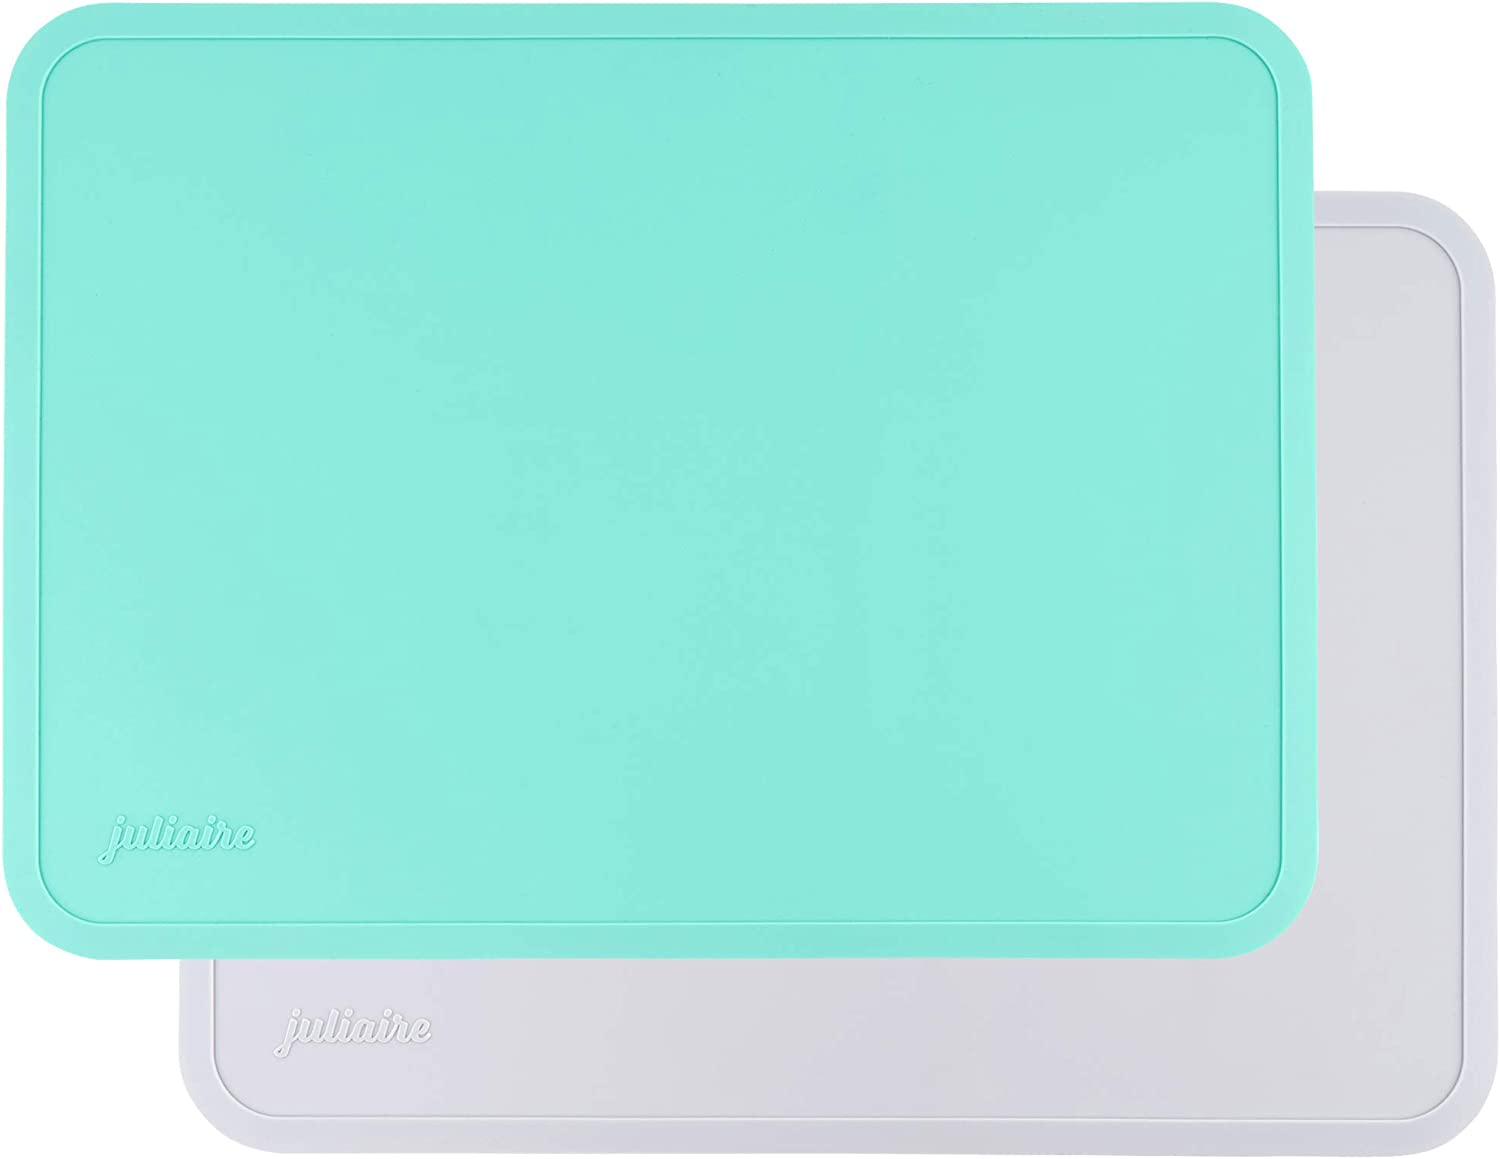 Juliaire Toddler Placemats for Dining Table| Made with BPA Free Baby Safe Silicone, 100% Food-Grade | Kids Placemat, Non Slip Pack of 2 (Gray and Mint)